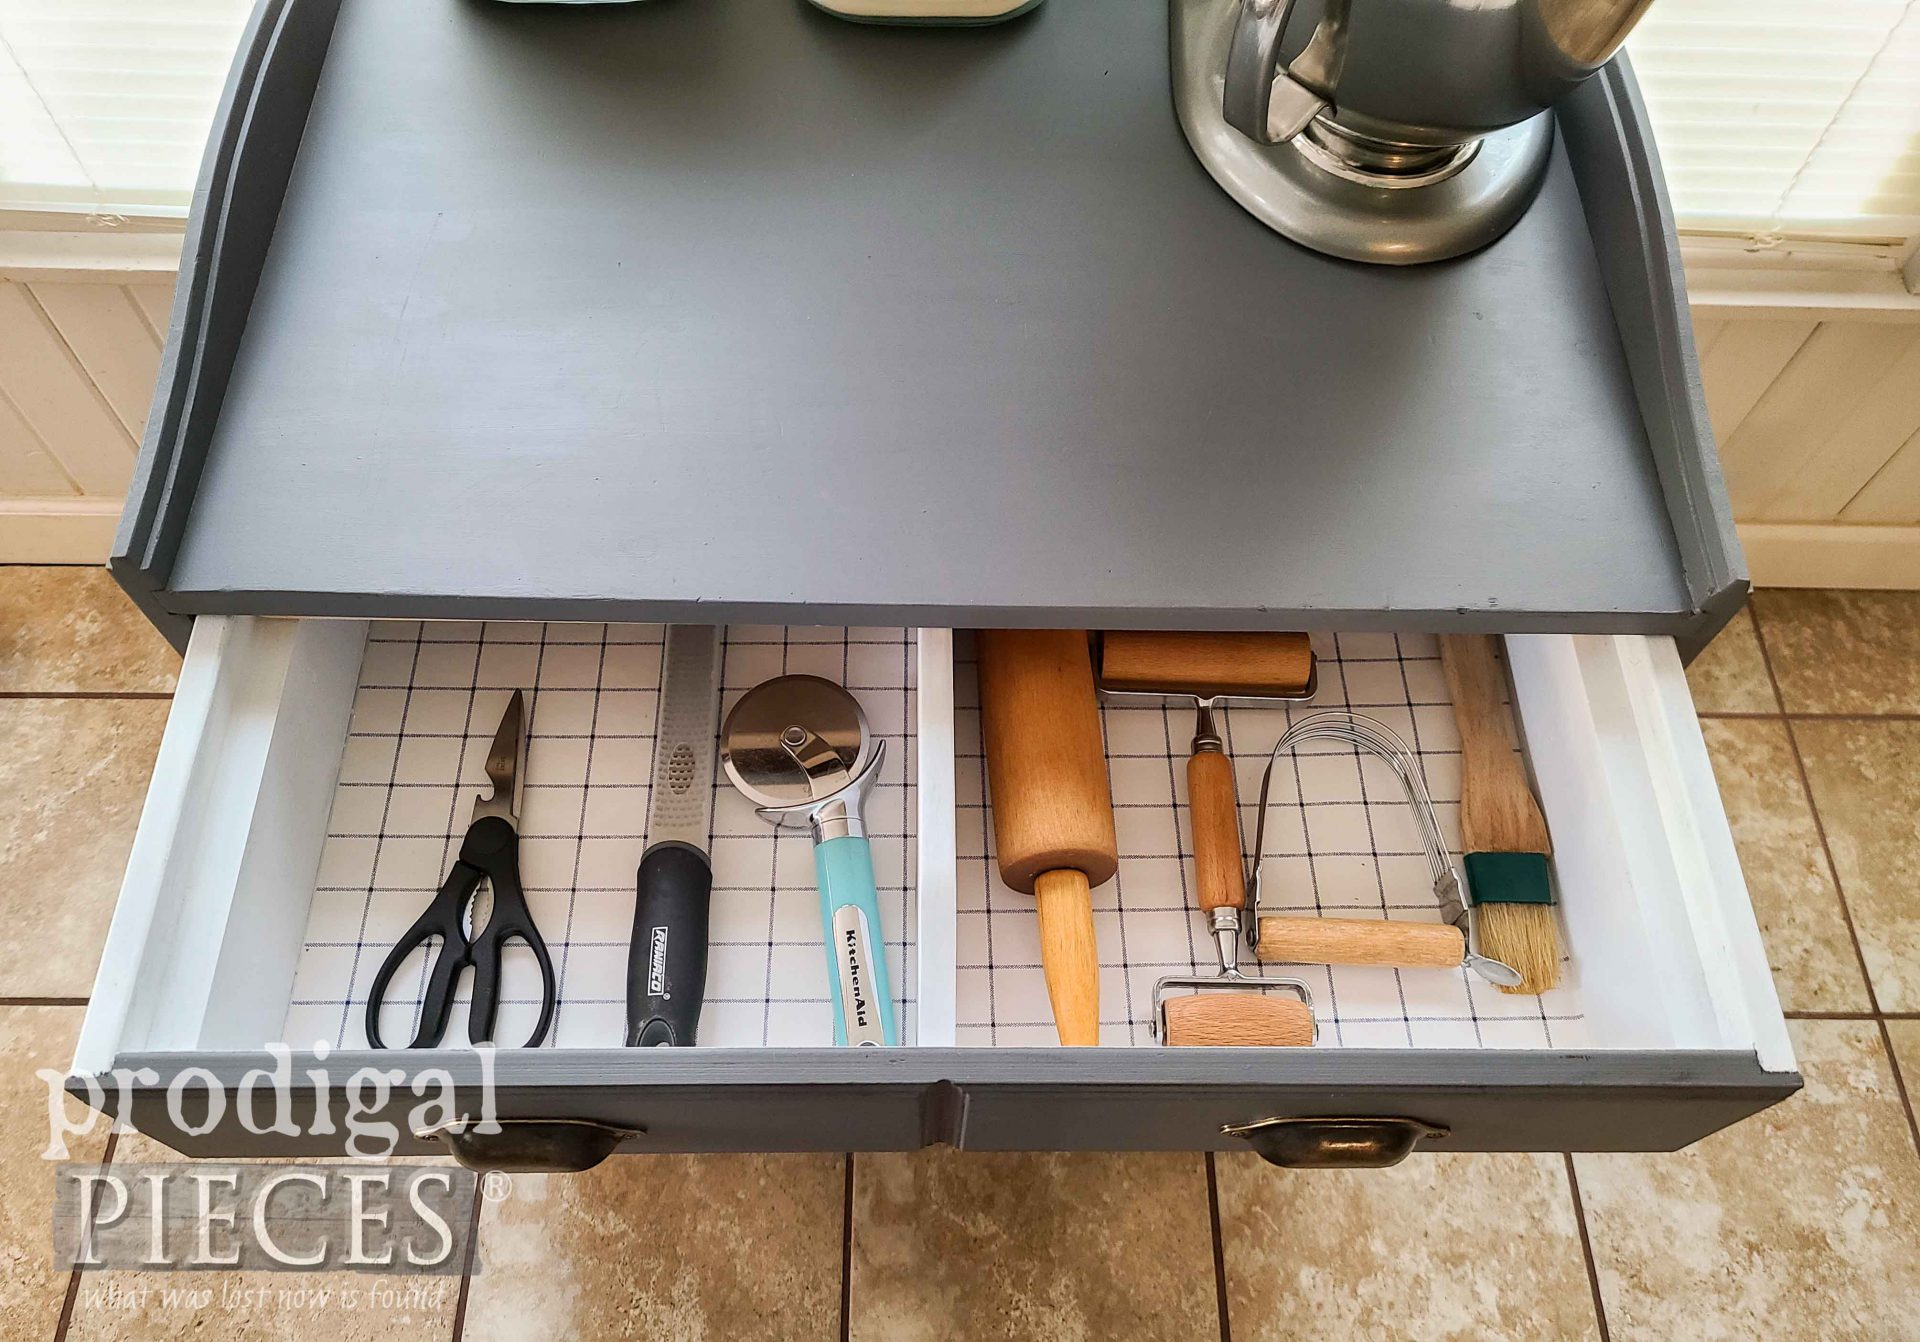 Open Baking Cabinet Drawer with Tools by Prodigal Pieces | prodigalpieces.com #prodigalpieces #farmhouse #furniture #home #homedecor #kitchen